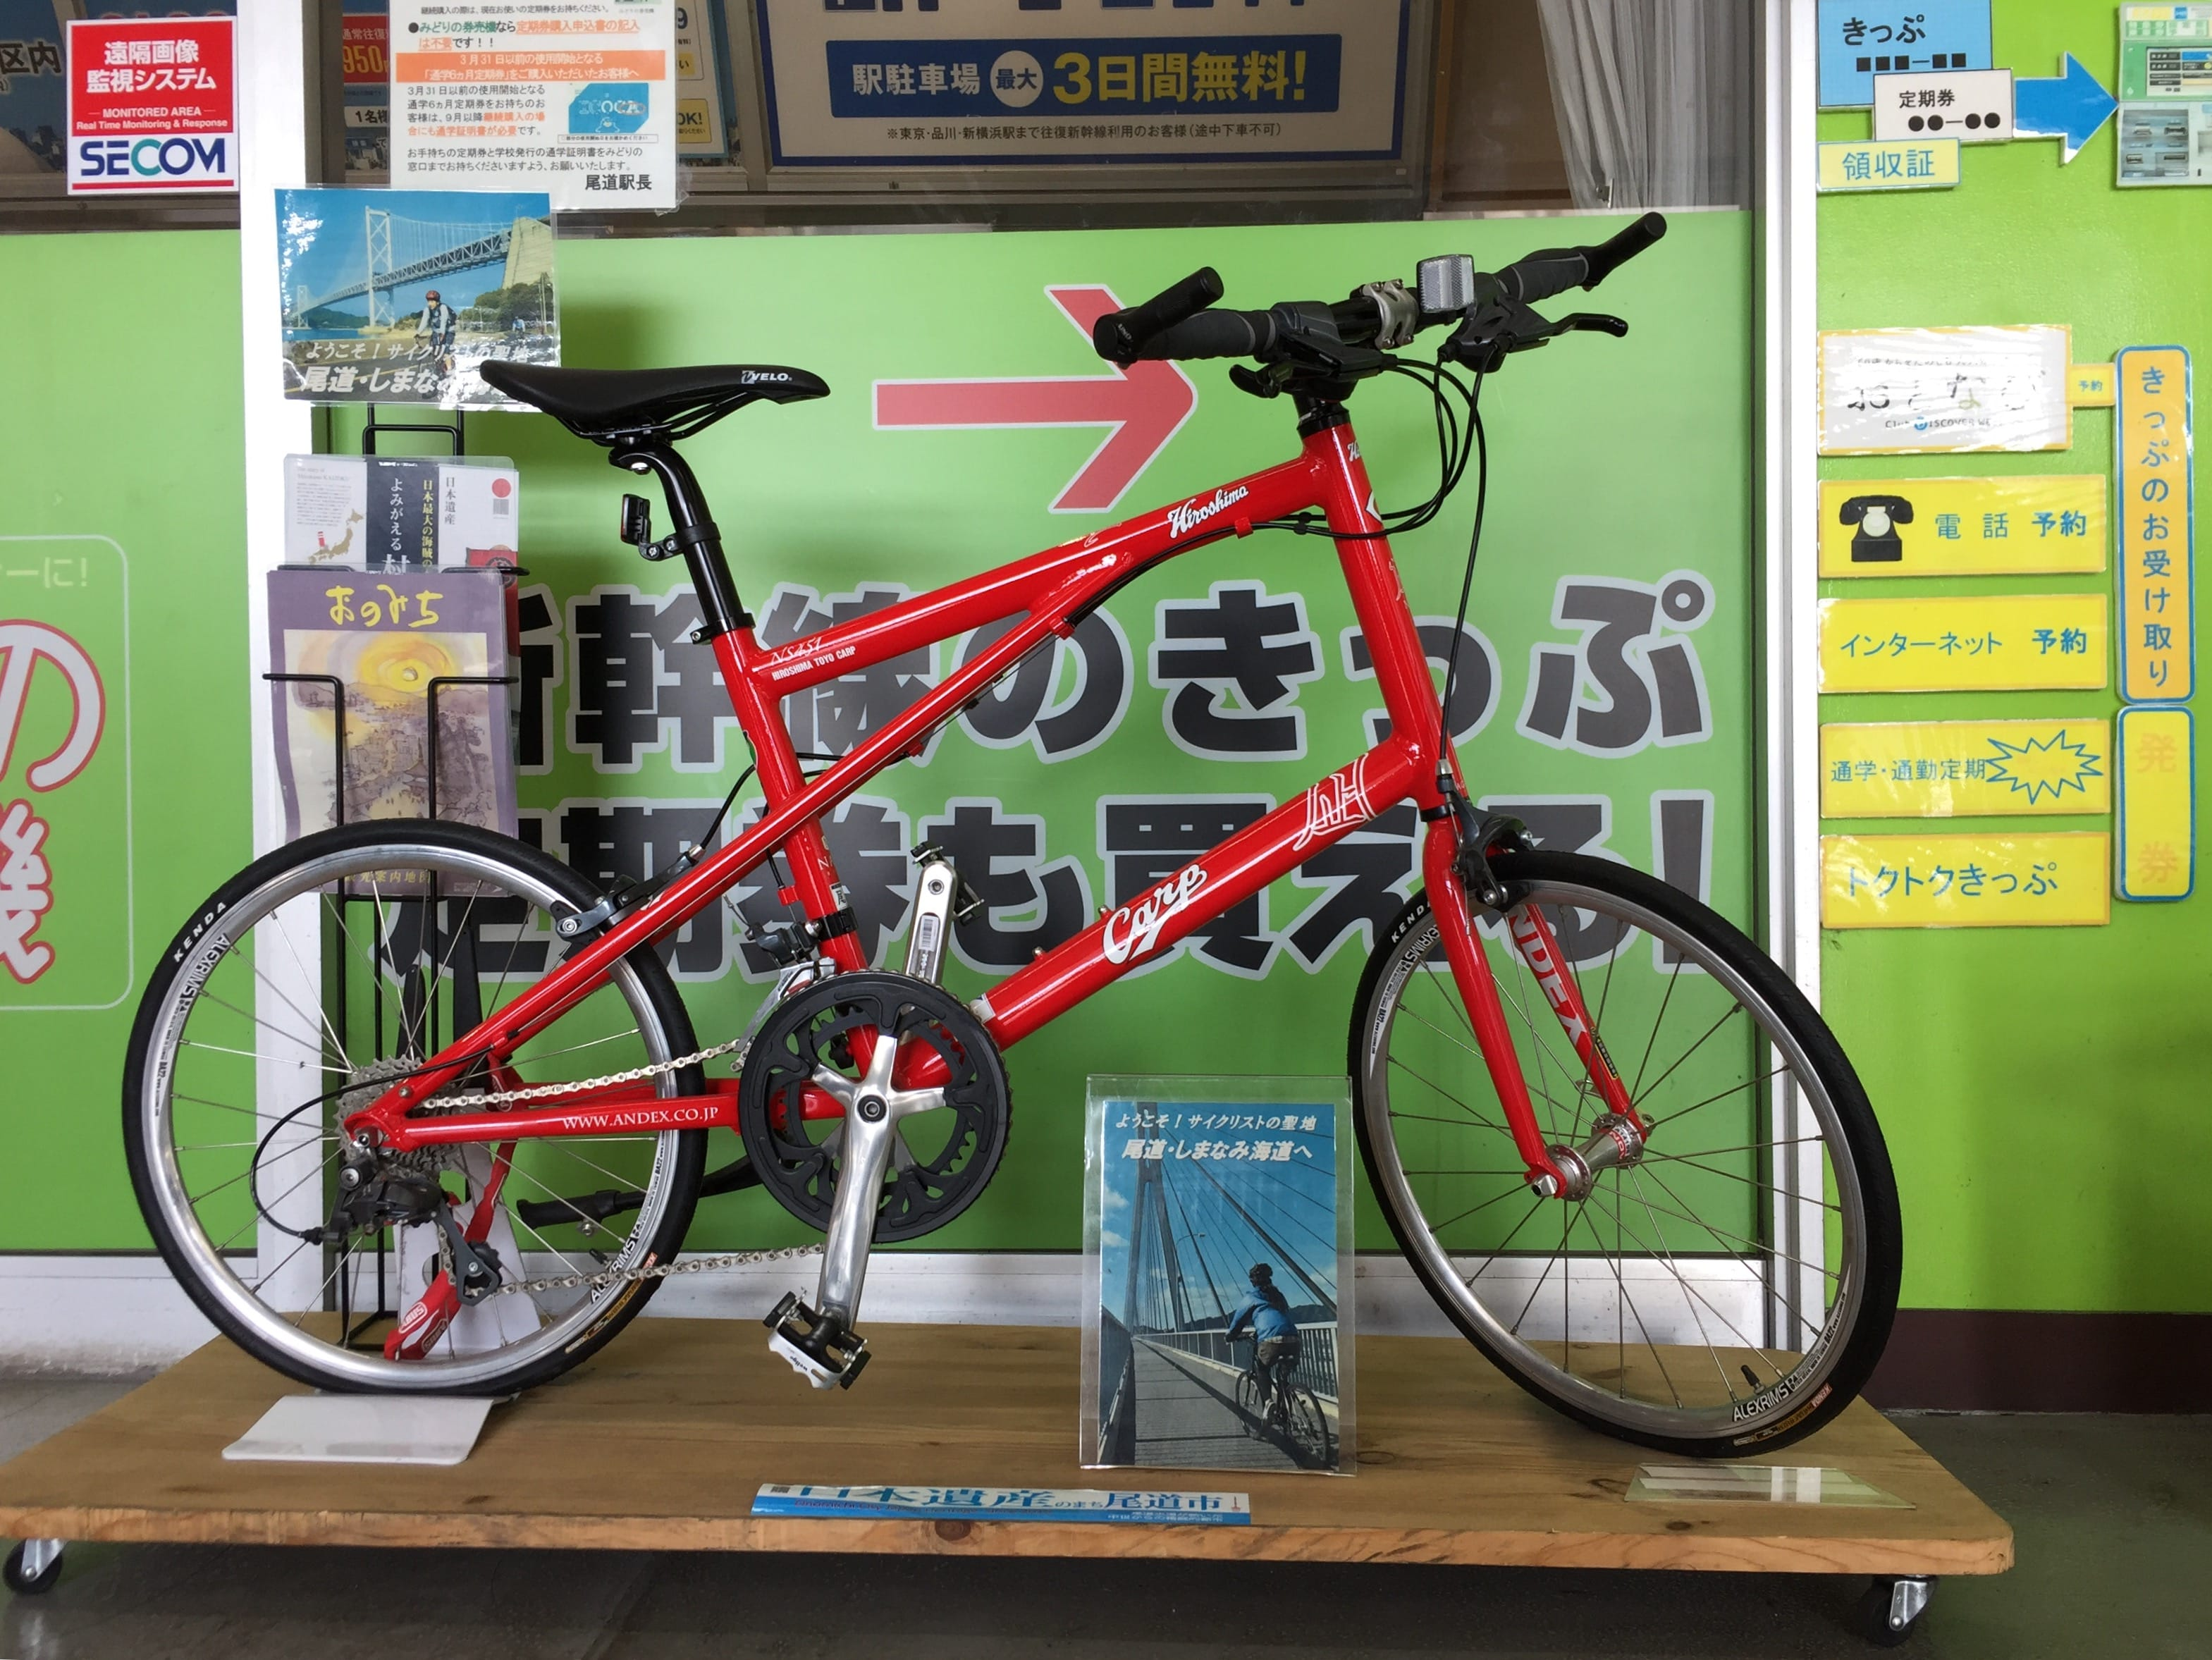 Small wheel road bike shown in a demonstration booth at Onomichi Station